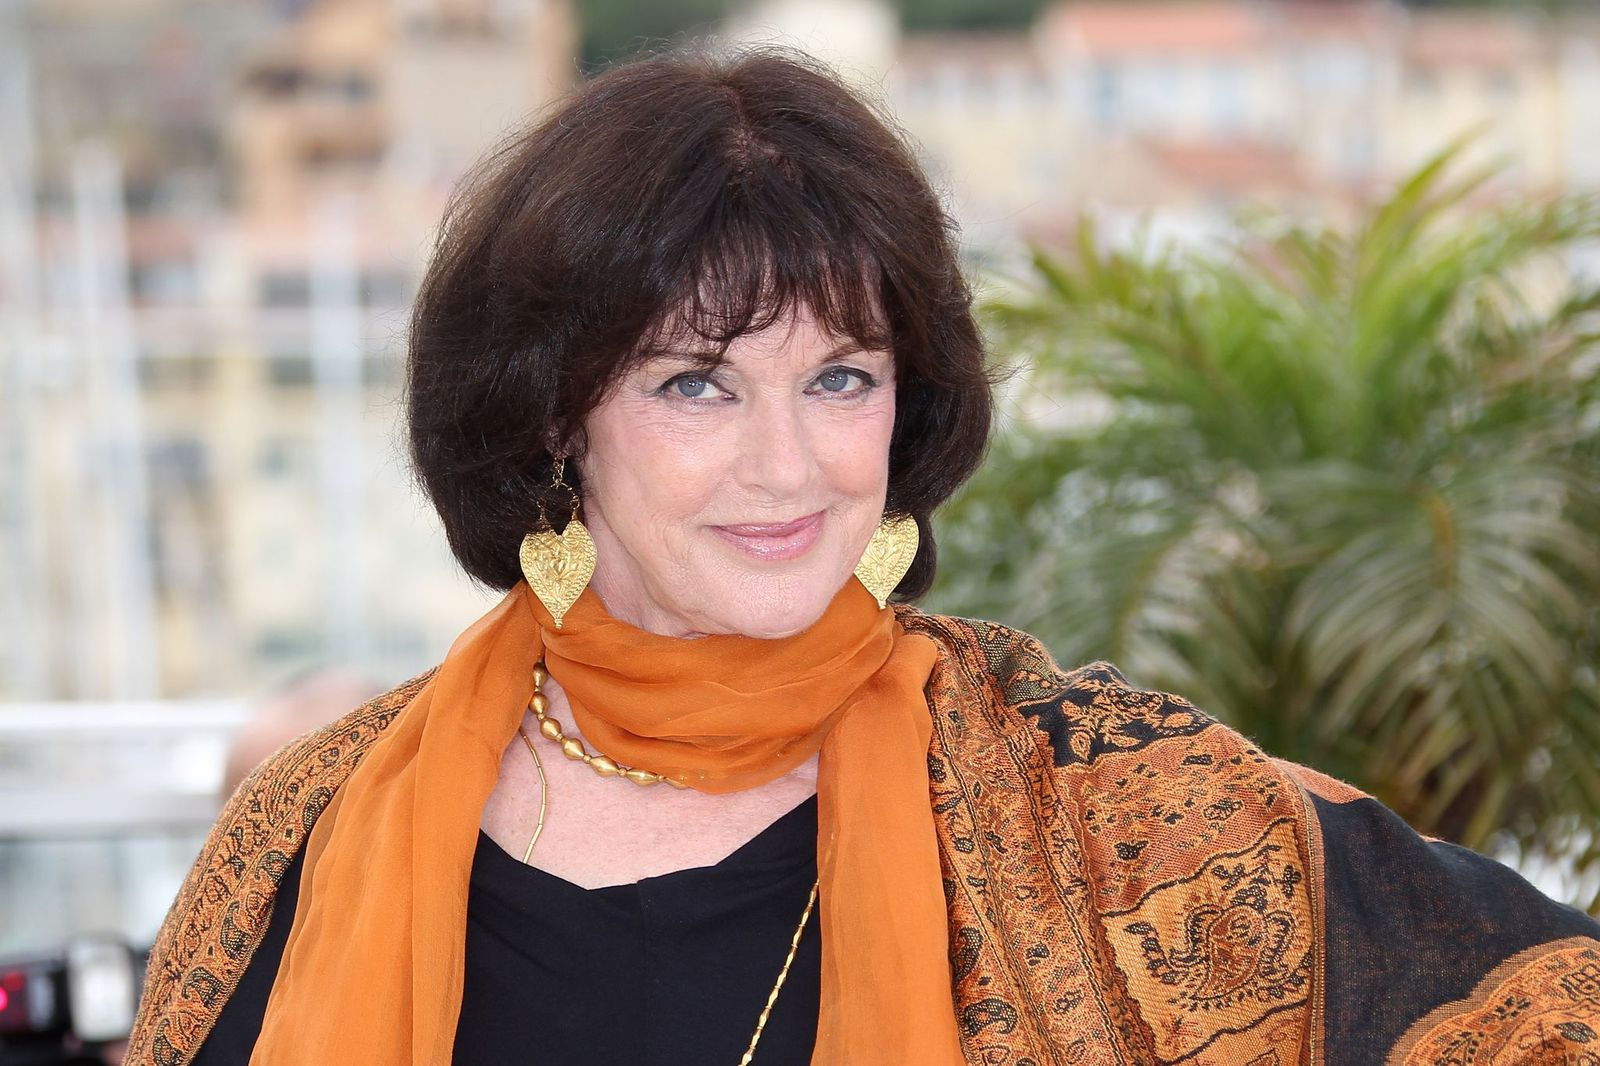 L'actrice Anny Duperey   Photo : Getty Images.